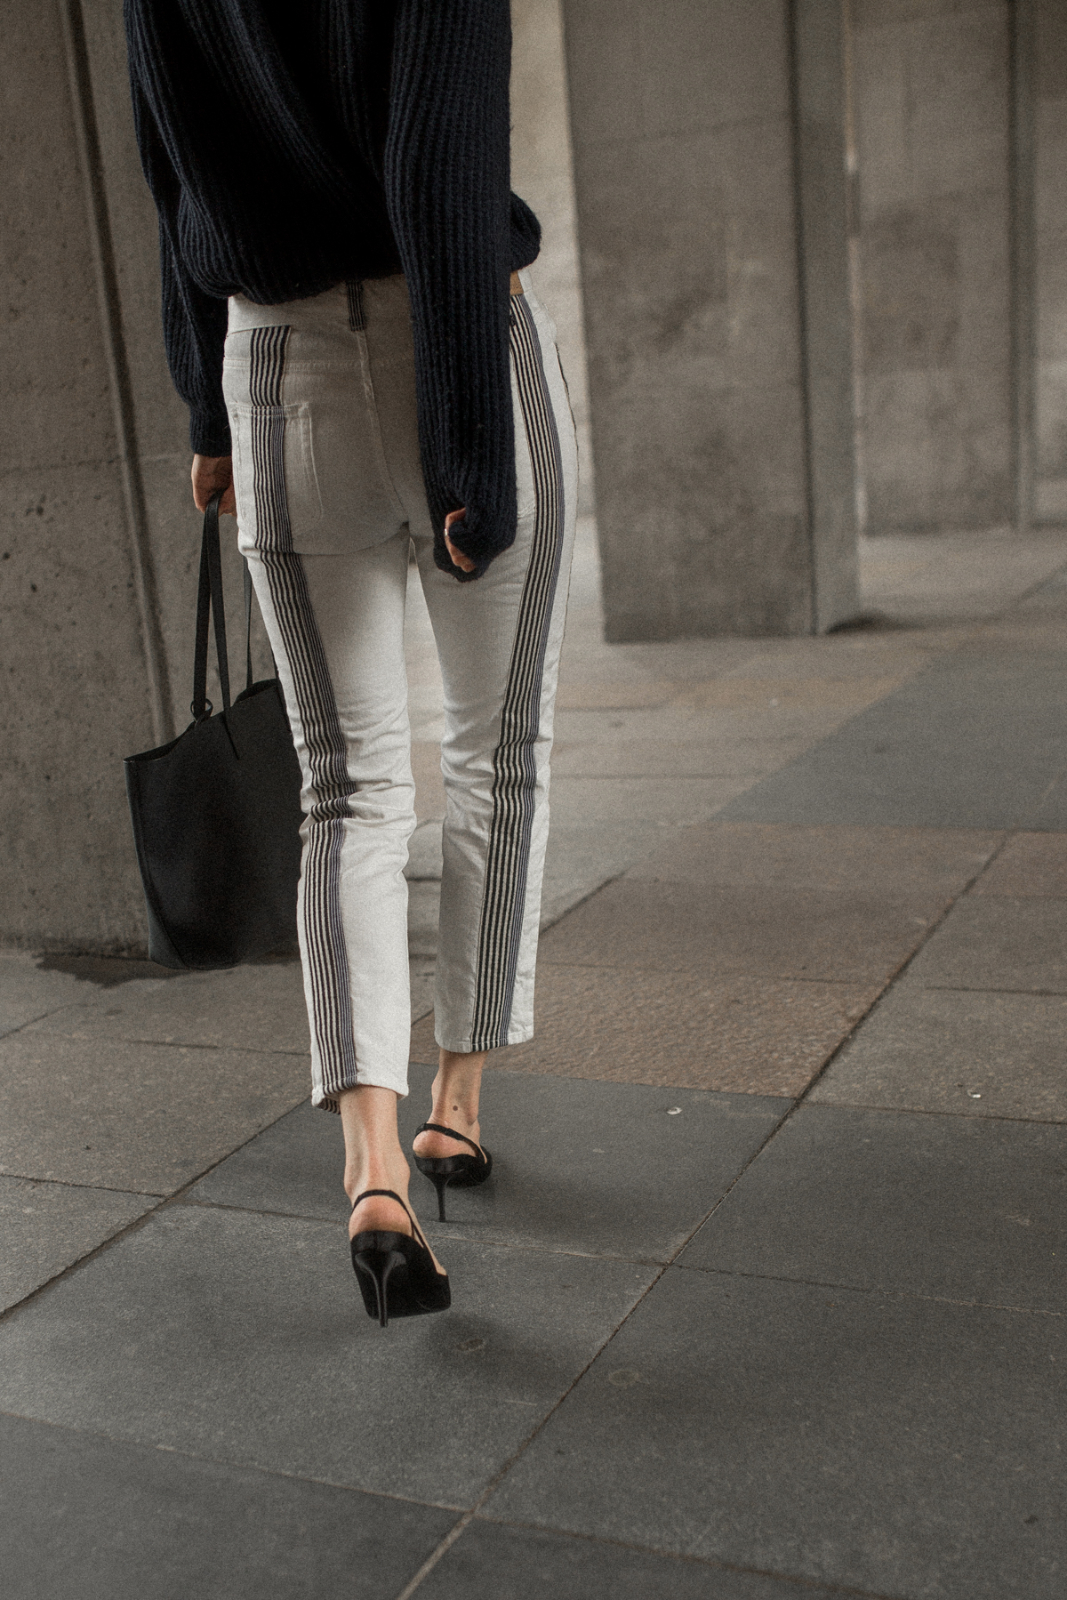 Slingback_Pumps_Berlin_The-Limits-of-Control-Fashion-Fashionblogger-Blogger-Berlin-Deutschland-Modeblog-Modeblogger